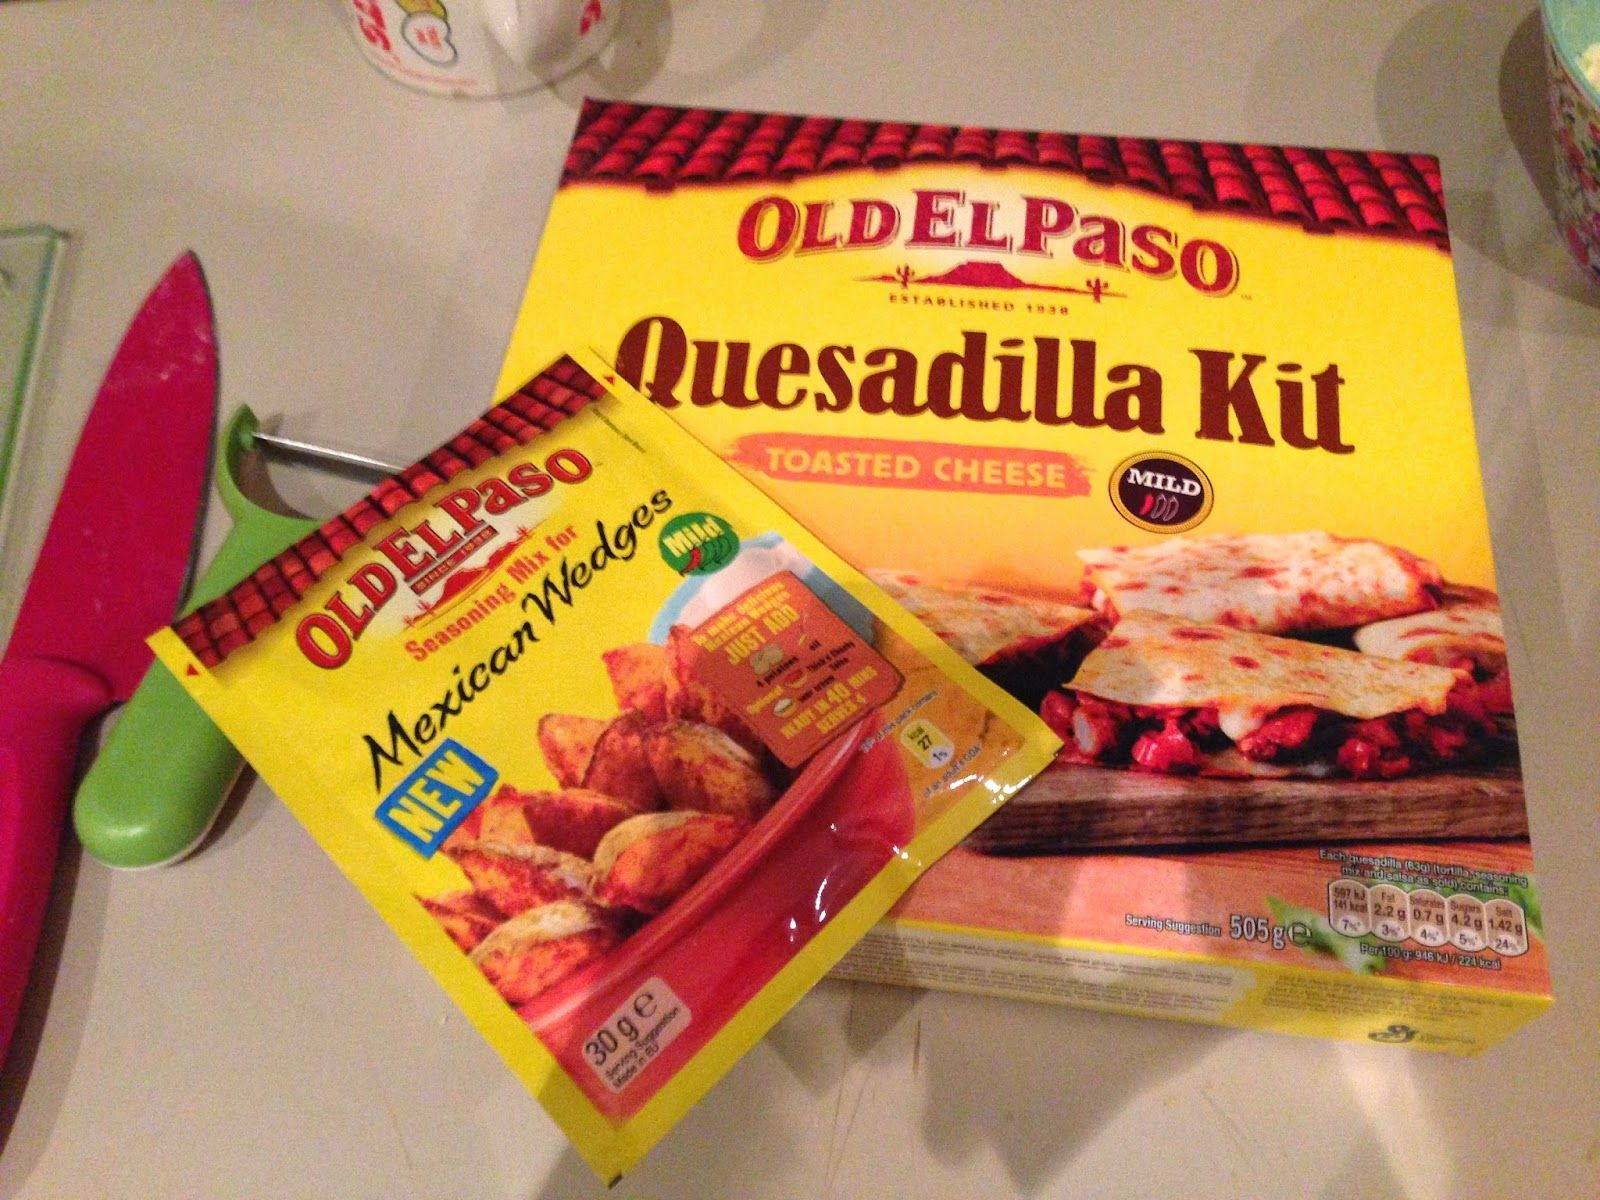 BLOGGER OUTREACH - HULL BLOGGER EVENT -Living my champagne lifestyle on a lemonade budget: Old el Paso kits | Sample Sunday